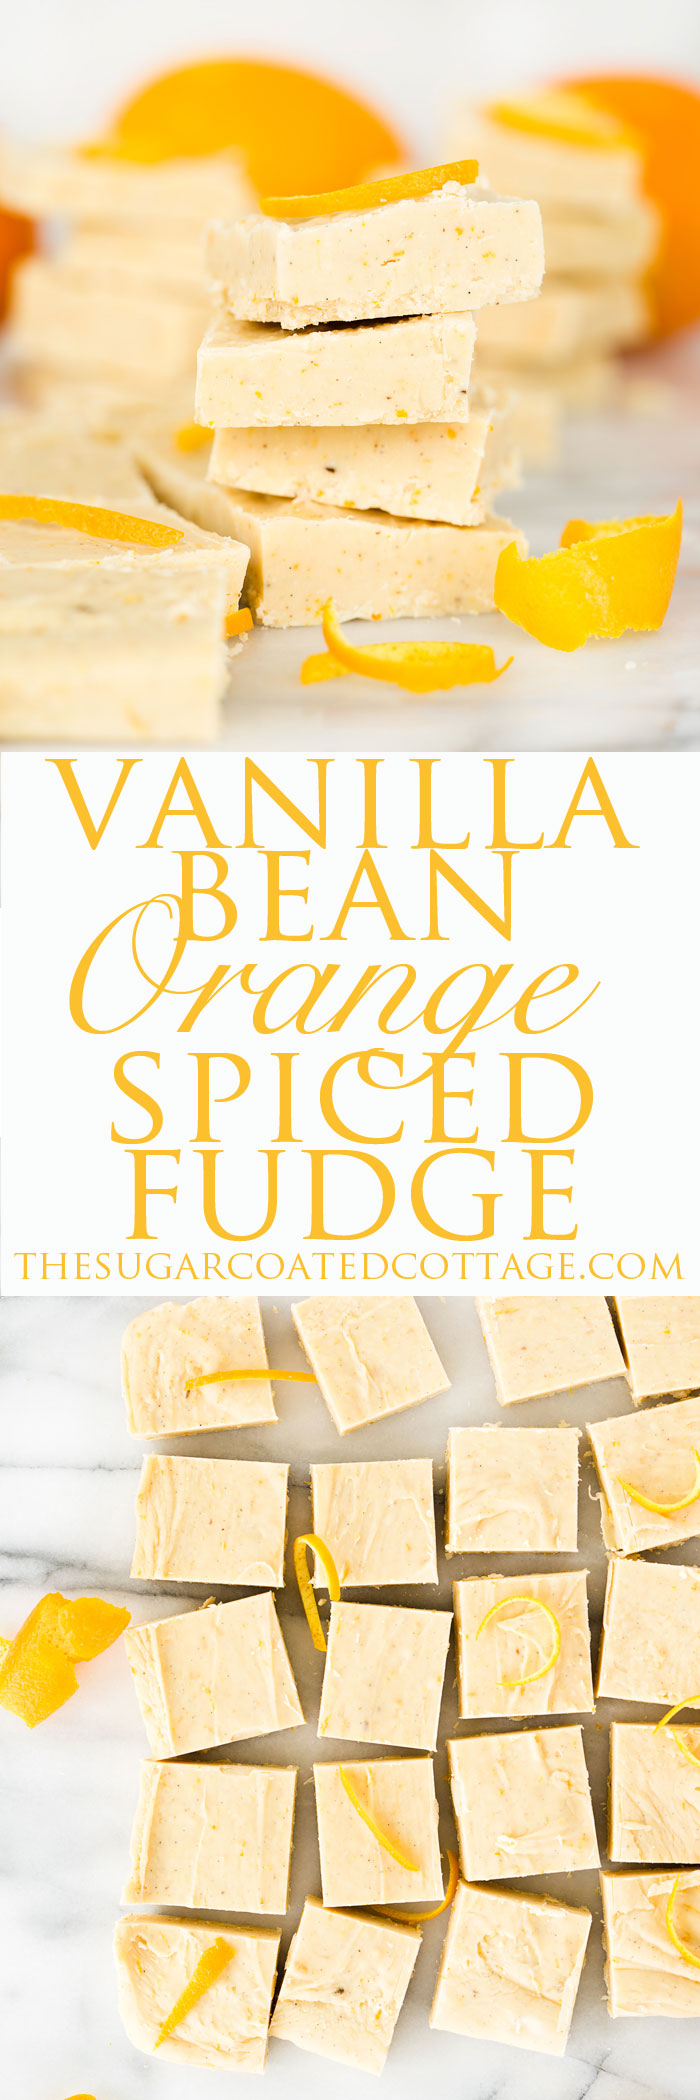 Vanilla Bean Orange Spice Fudge Recipe. Smooth, creamy, melt in your mouth fudge with the bright freshness of orange and lightly spiced.   thesugarcoatedcottage.com